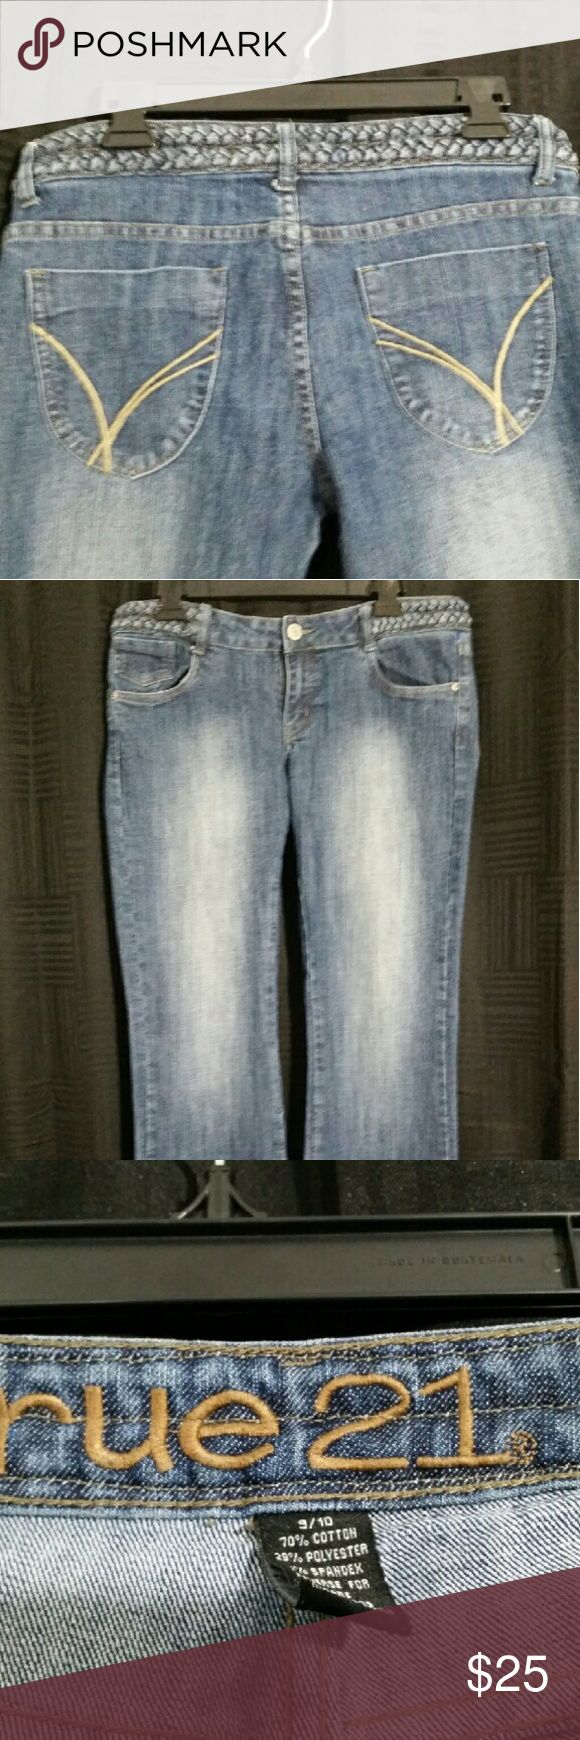 Rue 21 Womens Jeans 9/10 Blue Denim Boot Cut Nice braided waist feature. Rue 21 Jeans Boot Cut